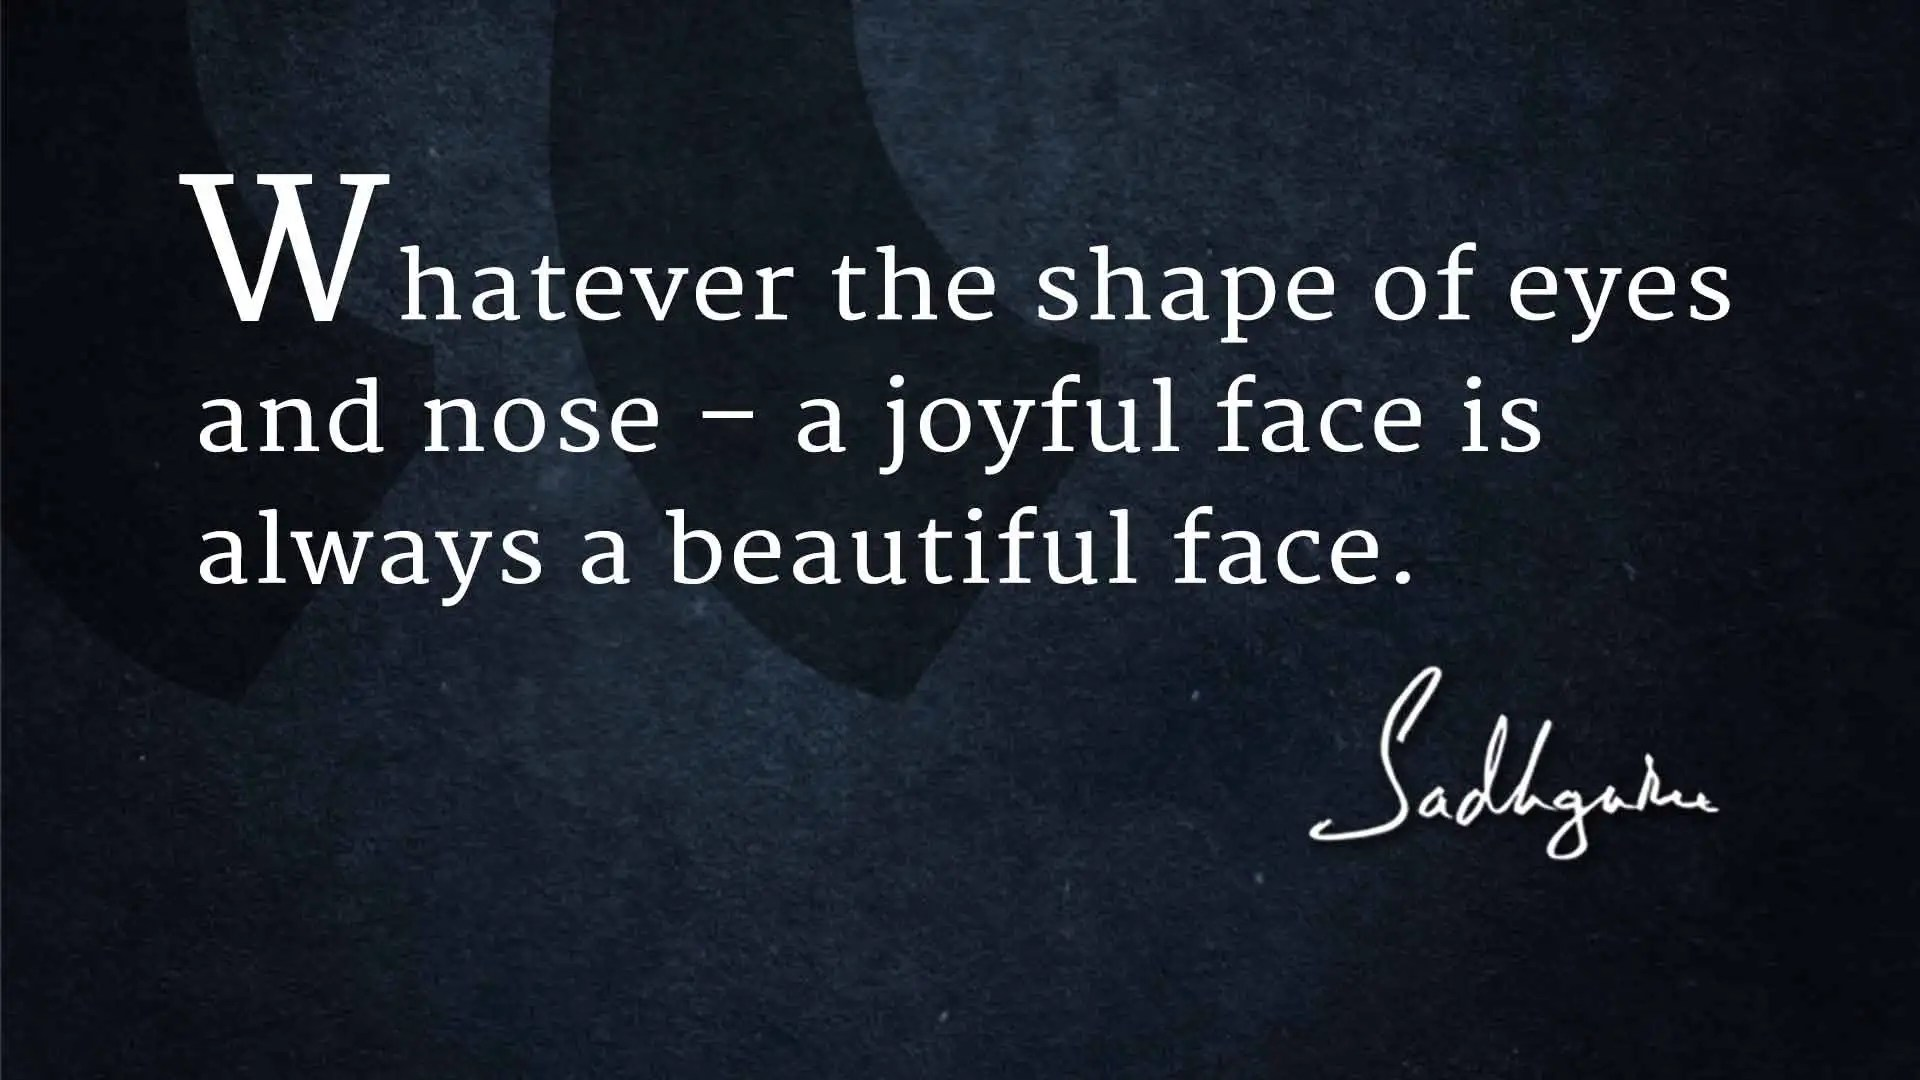 Happy New Year 2016 Quotes Wallpapers Living With Joy 6 Sadhguru Quotes To Inspire Your